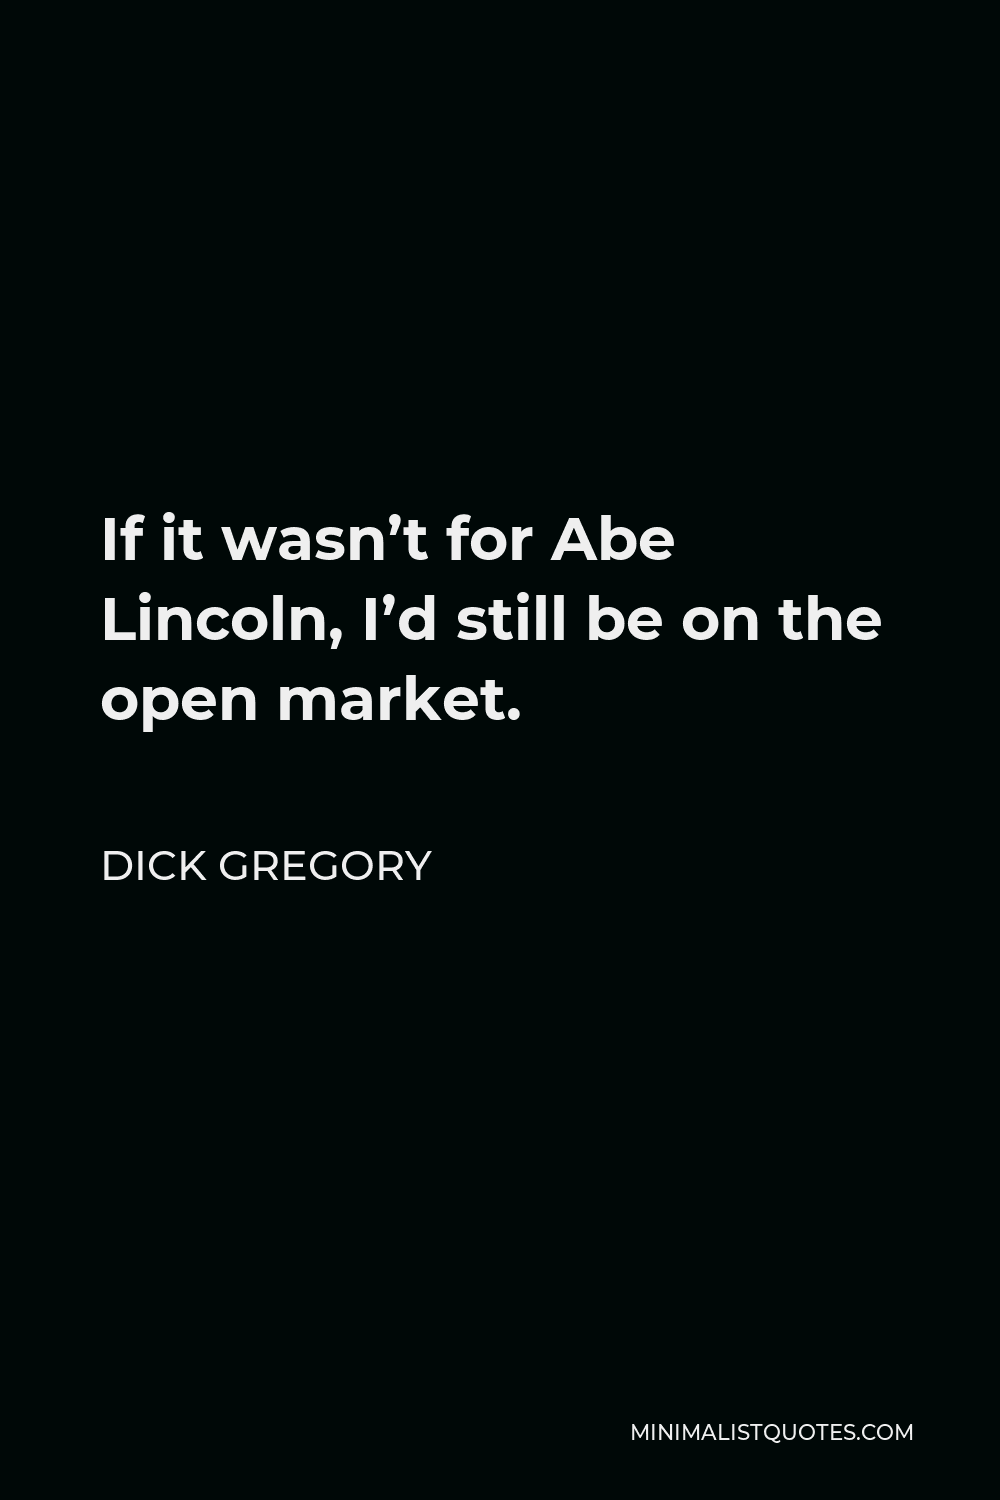 Dick Gregory Quote - If it wasn't for Abe Lincoln, I'd still be on the open market.